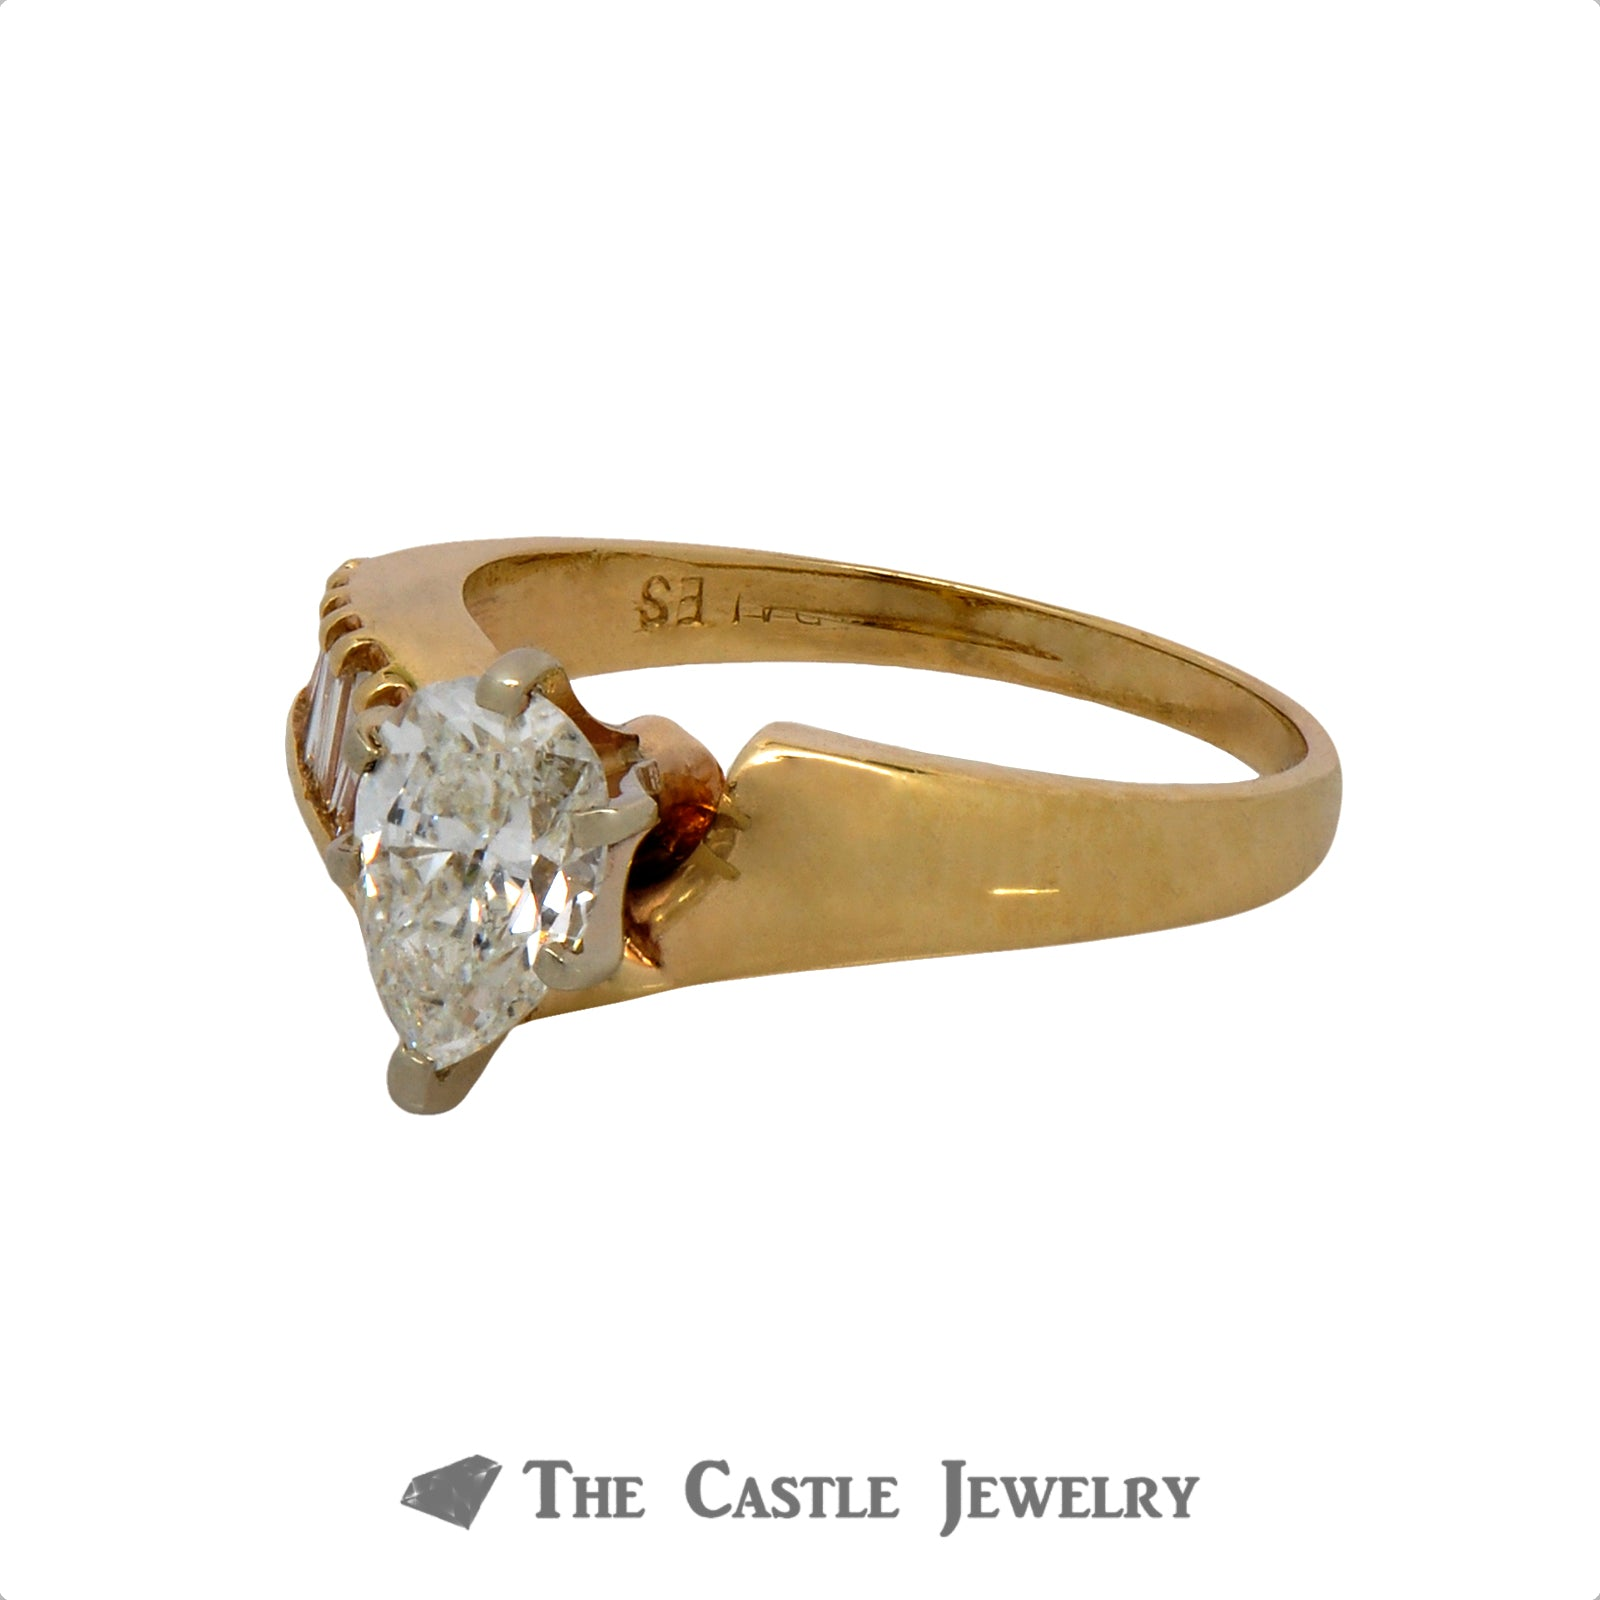 Pear Cut Diamond Engagement Ring with Asymmetrical Baguette Cut Diamond Accents in 14k Yellow Gold-2